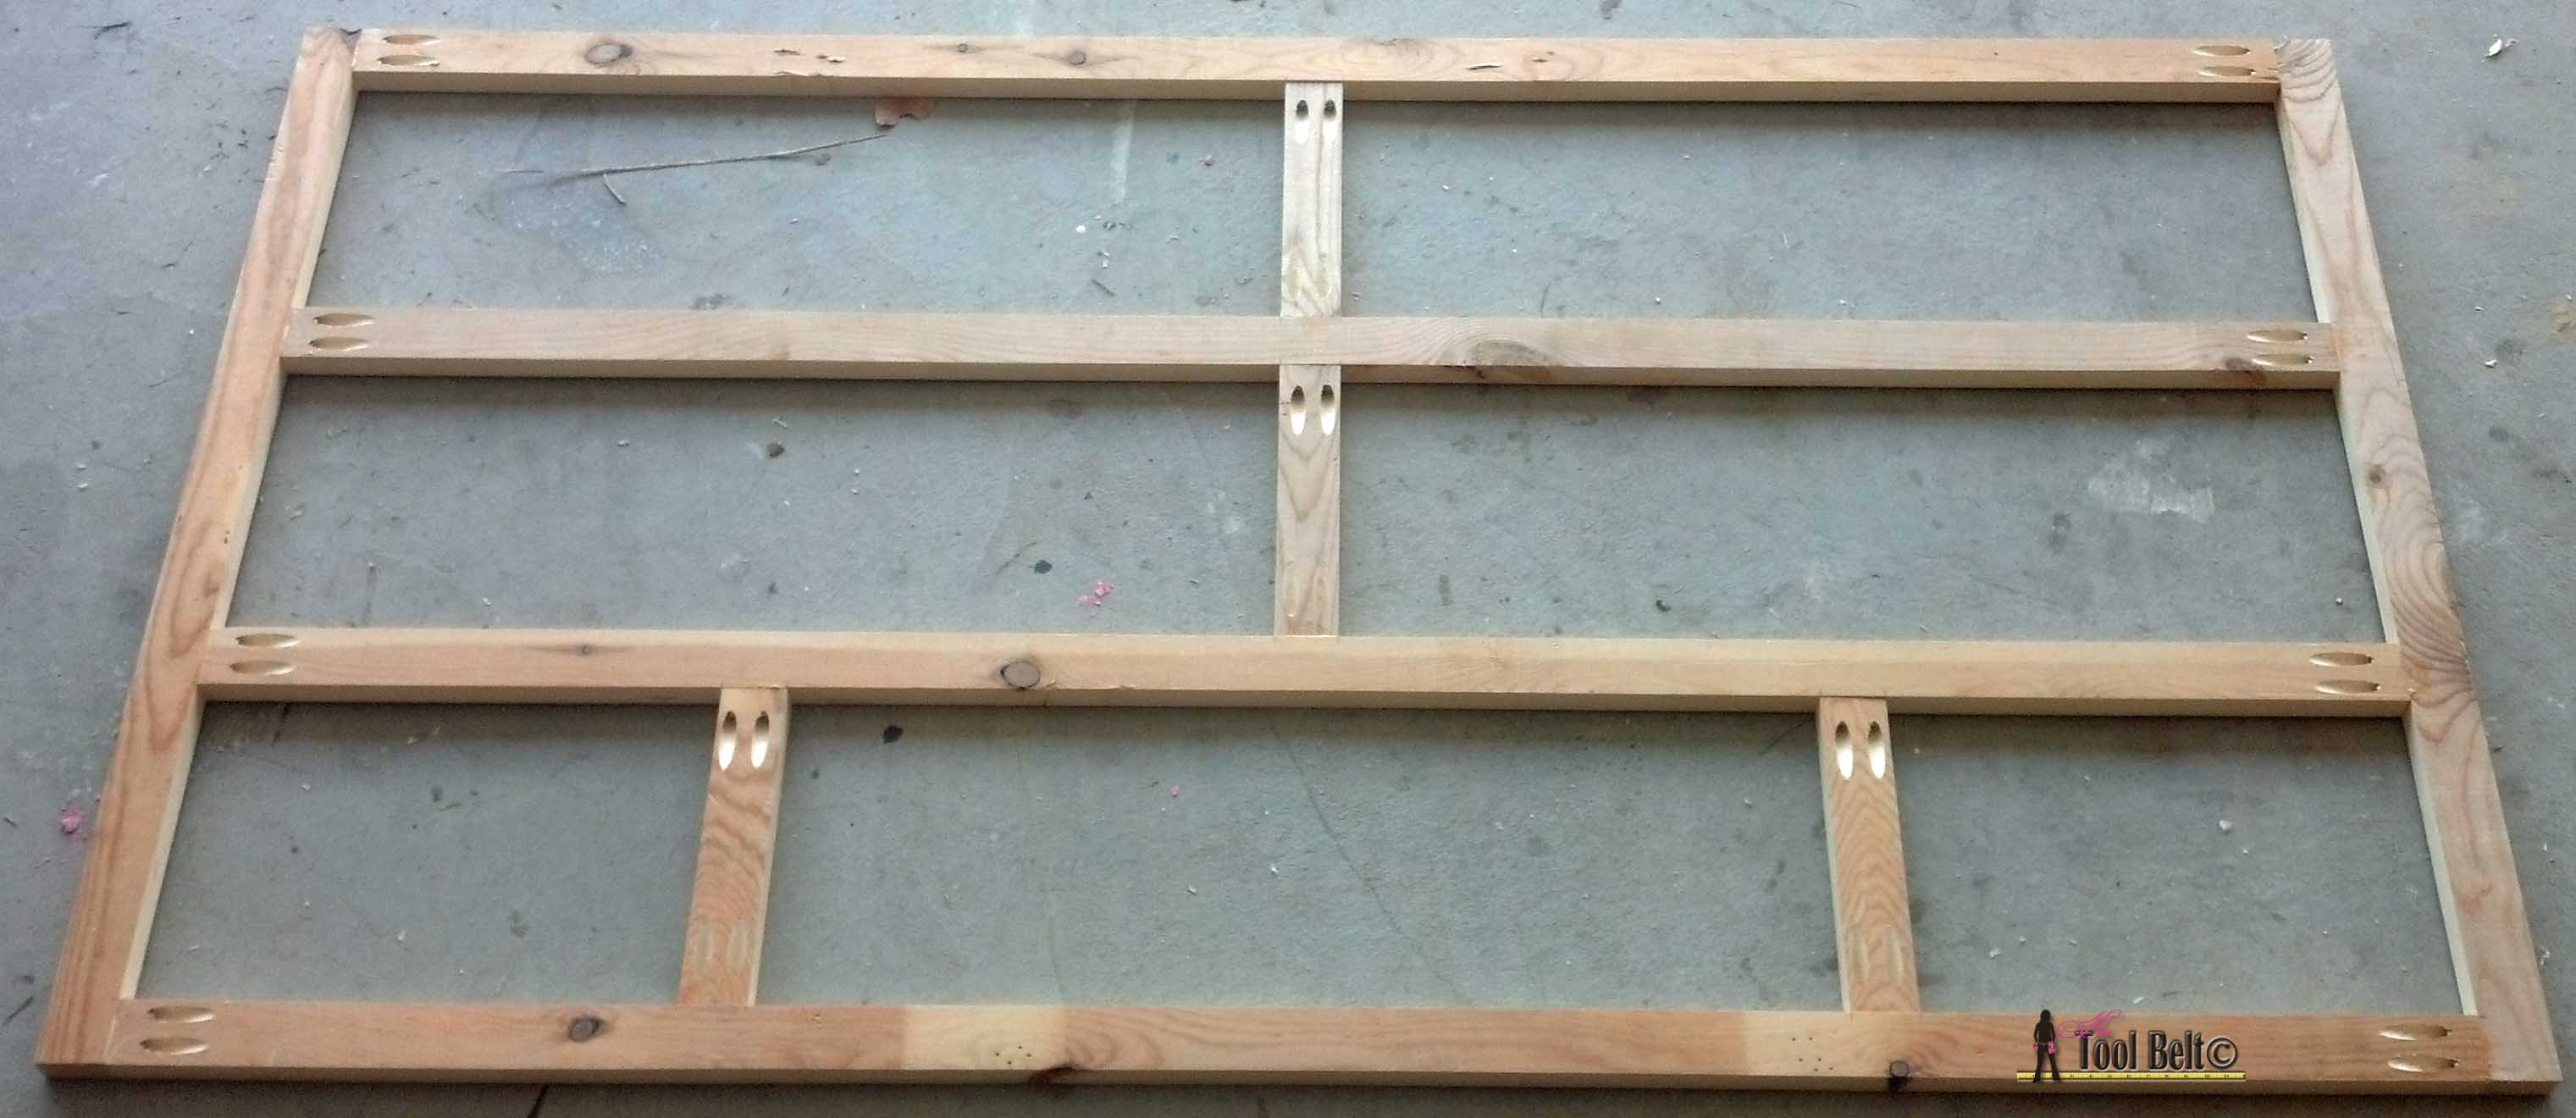 Building a dresser frame free download pdf woodworking A frame builders